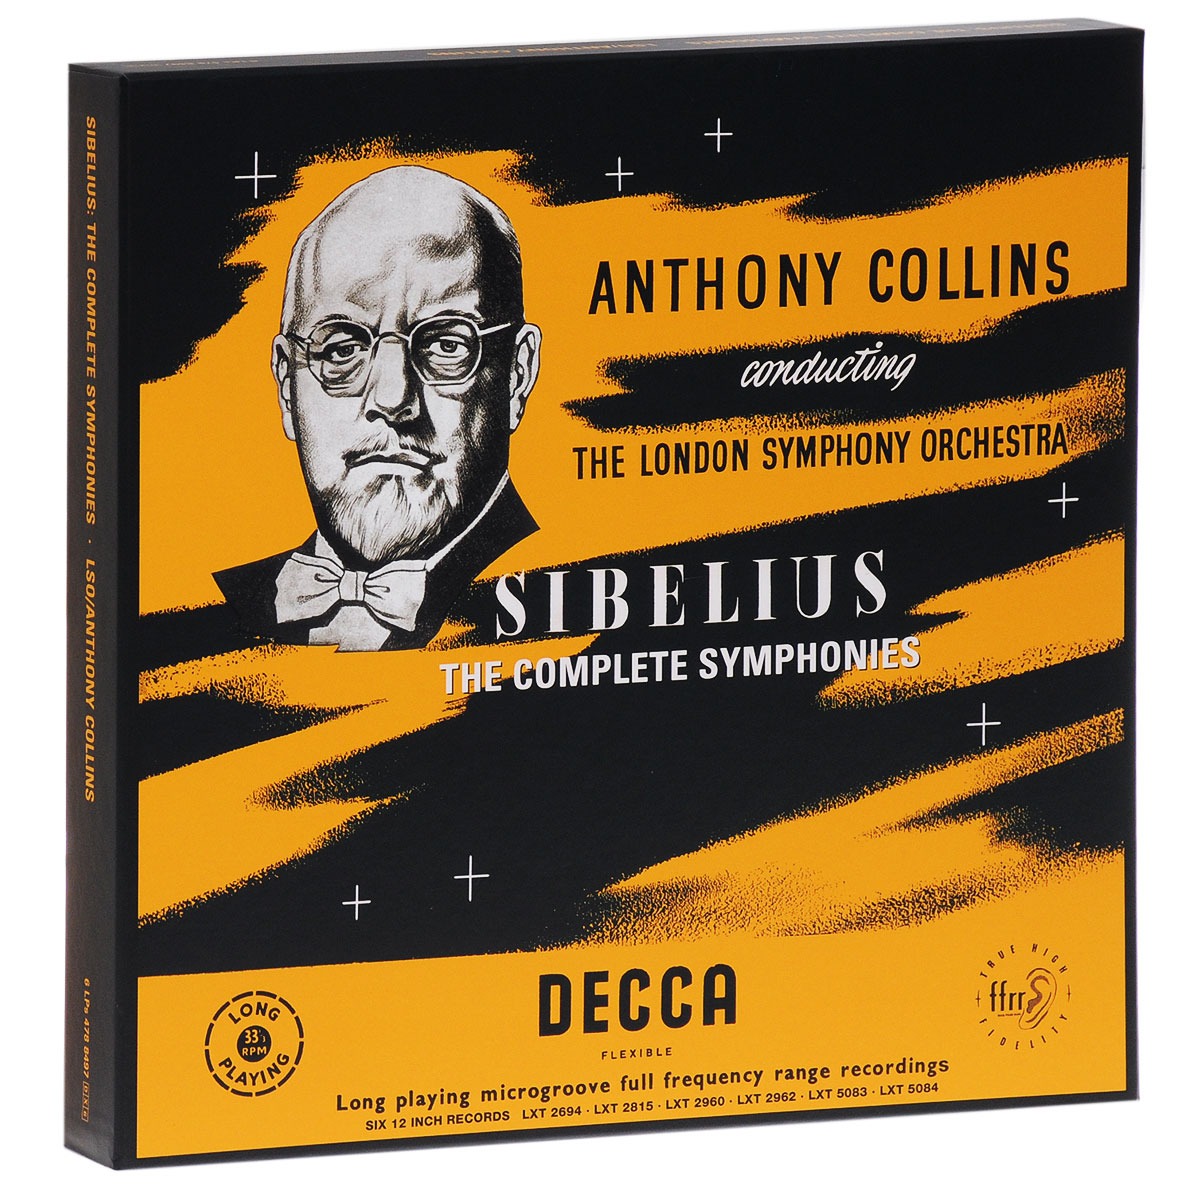 Энтони Коллинз,The London Symphony Orchestra Anthony Collins. Sibelius. The Complete Symphonies (6 LP) phil collins dance into the light 2 lp